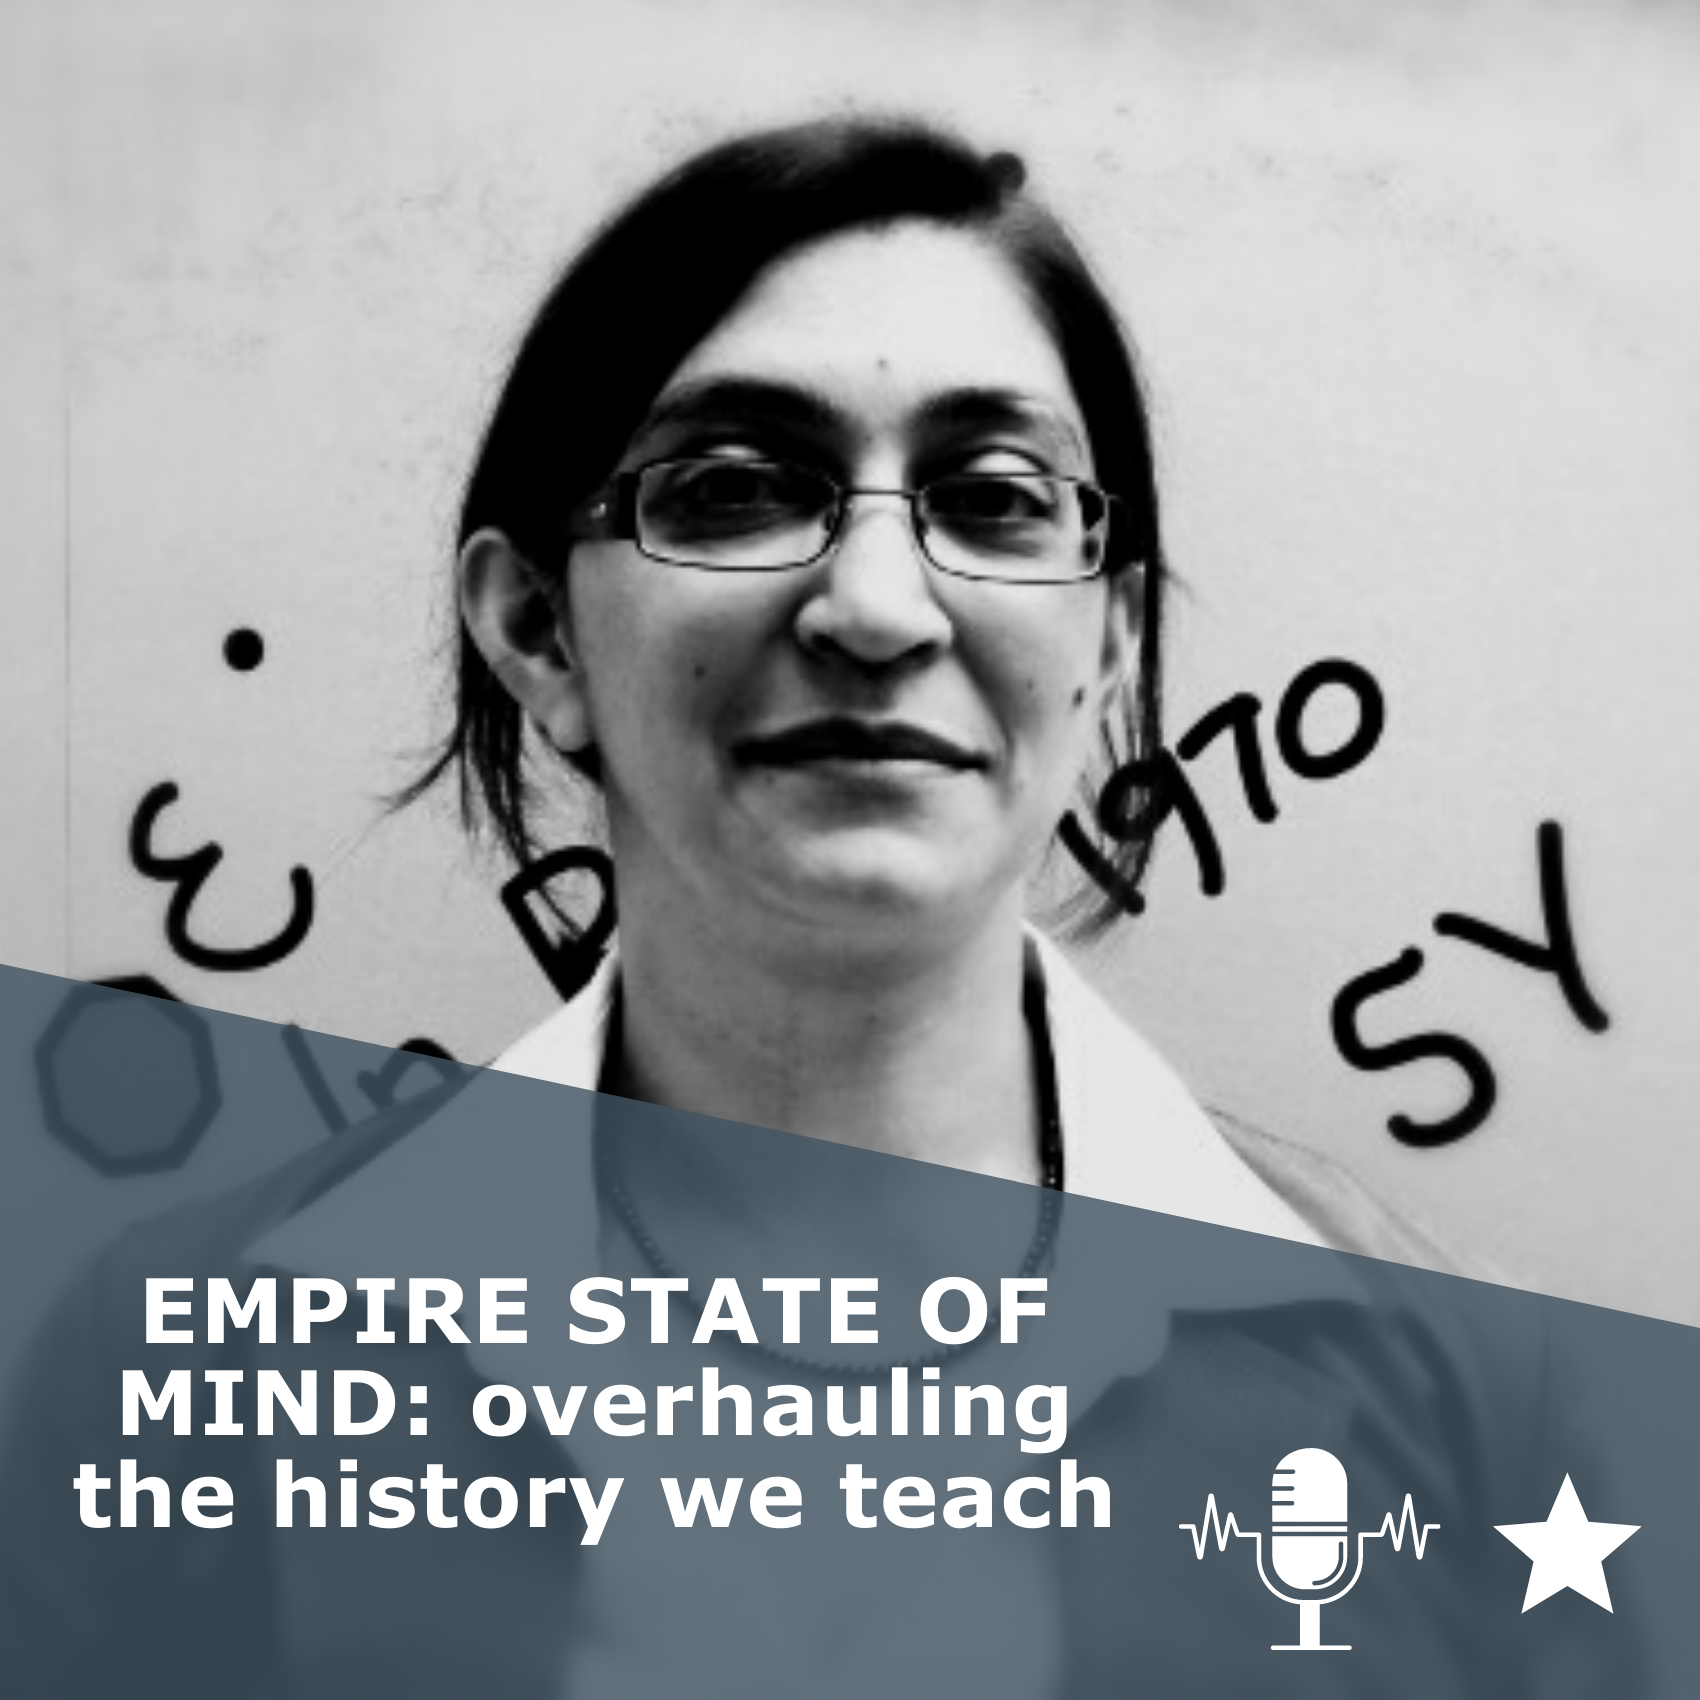 Picture of Professor Gurminder Bhambra, expert in postcolonial studies, in black and white. Title EMPIRE STATE OF MIND: overhauling the history we teach. It is a podcast rated 2 stars